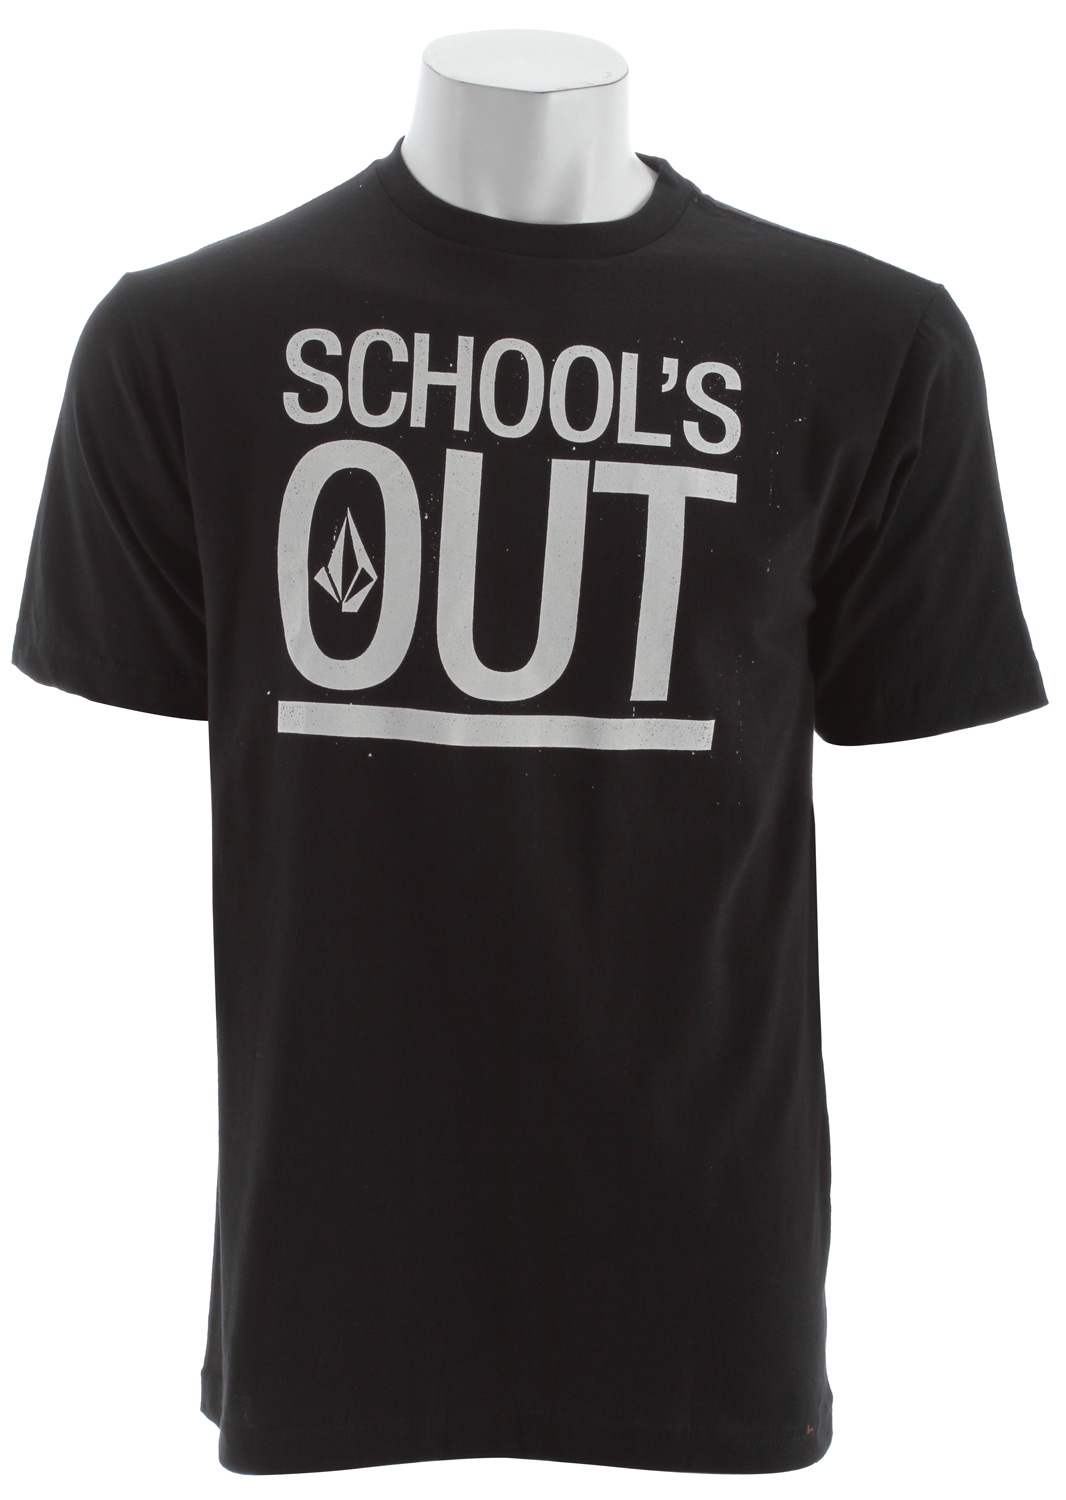 Surf Volcom Schools Out T-Shirt - $12.95